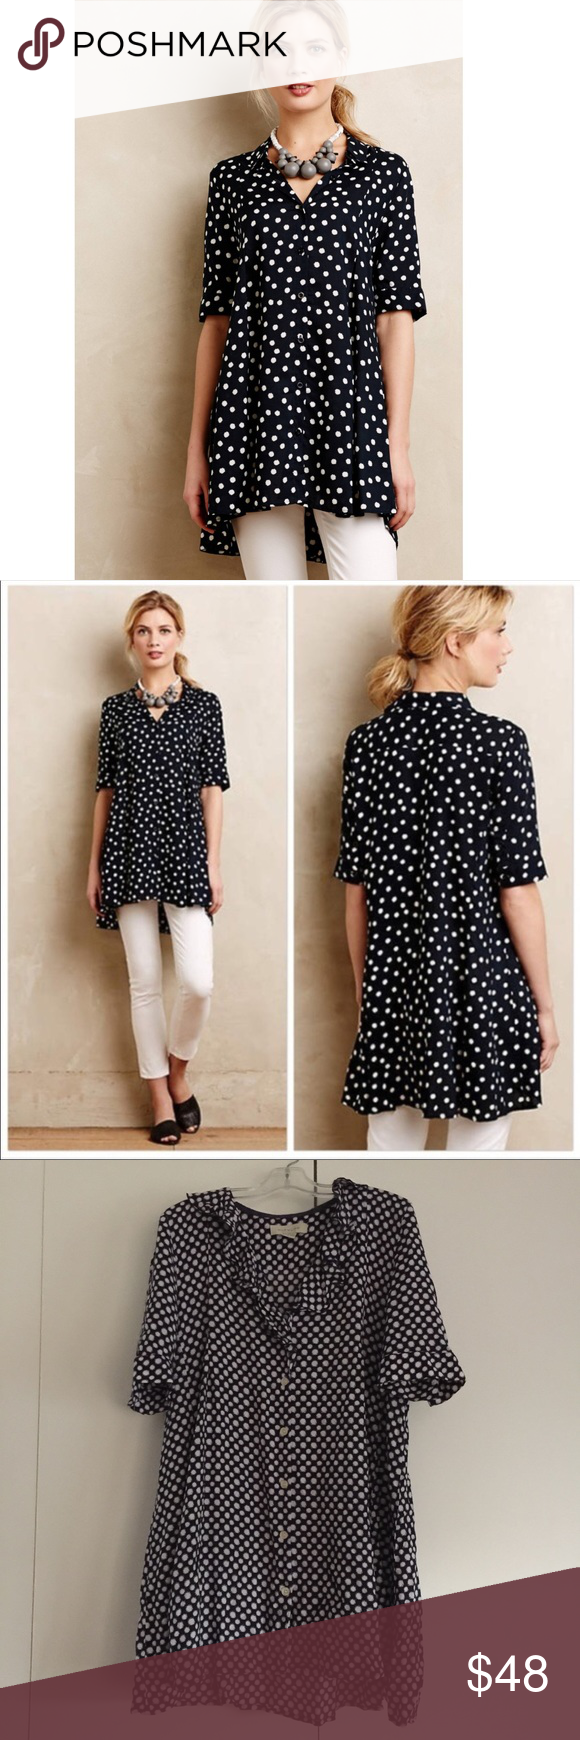 f614868536a3 Anthropologie 11:1 Tylho Adanne tunic -size XS Anthropologie 11:1:Tylho  Adanne tunic top Size XS Blue and white polka dot Button front Sleeve  button detail ...